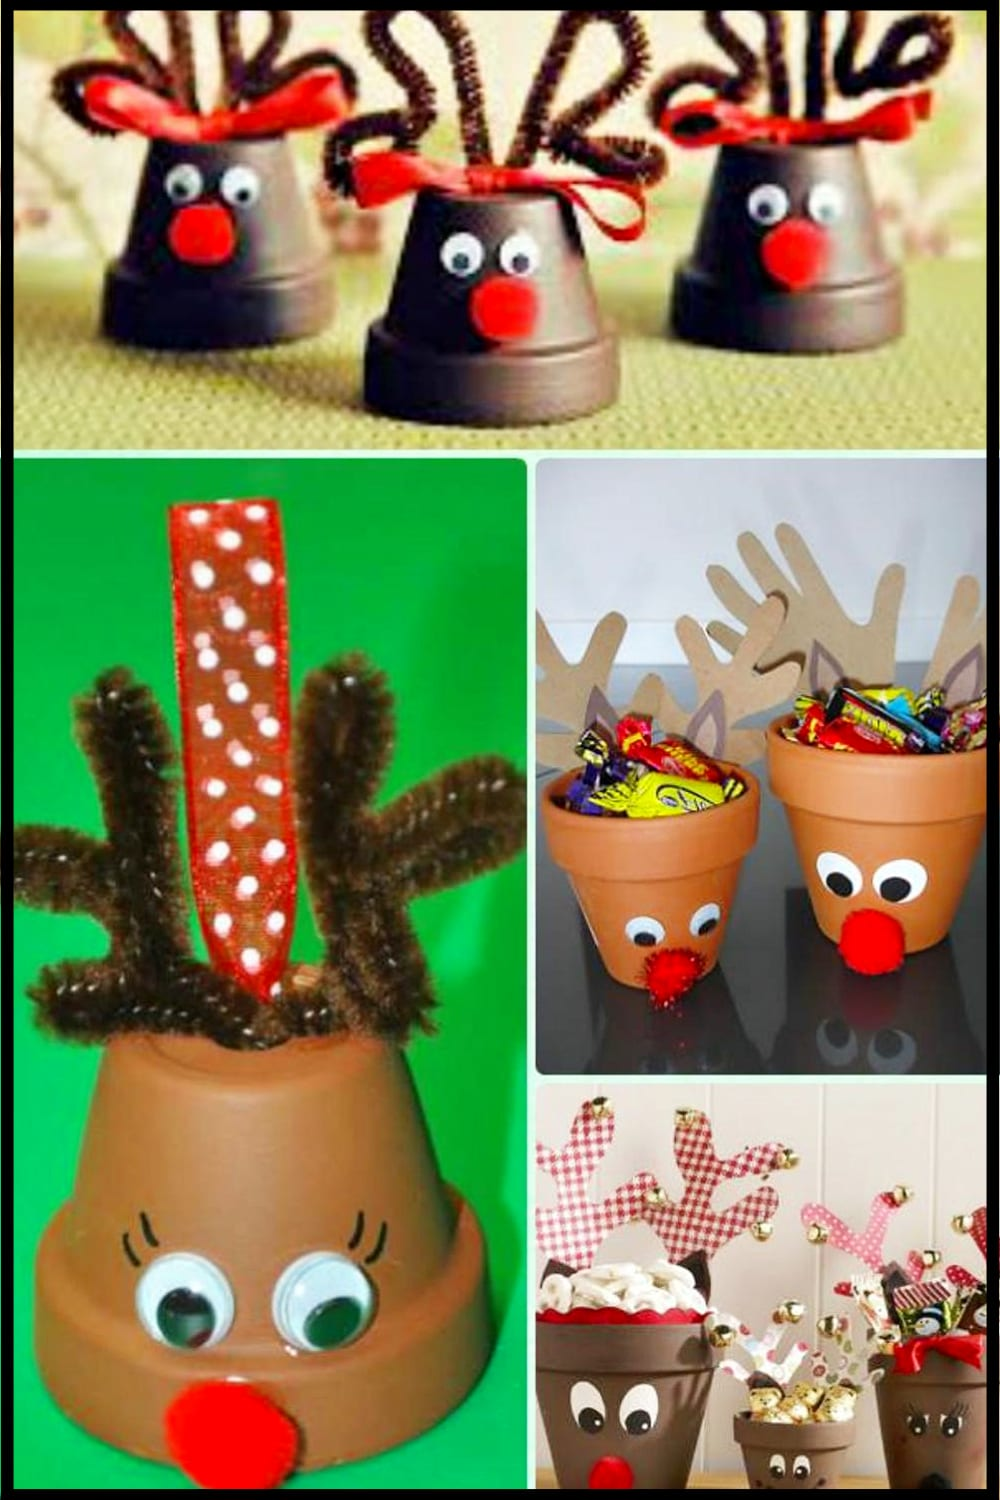 DIY Christmas decor and craft project ideas - clay pots decorated for Christmas